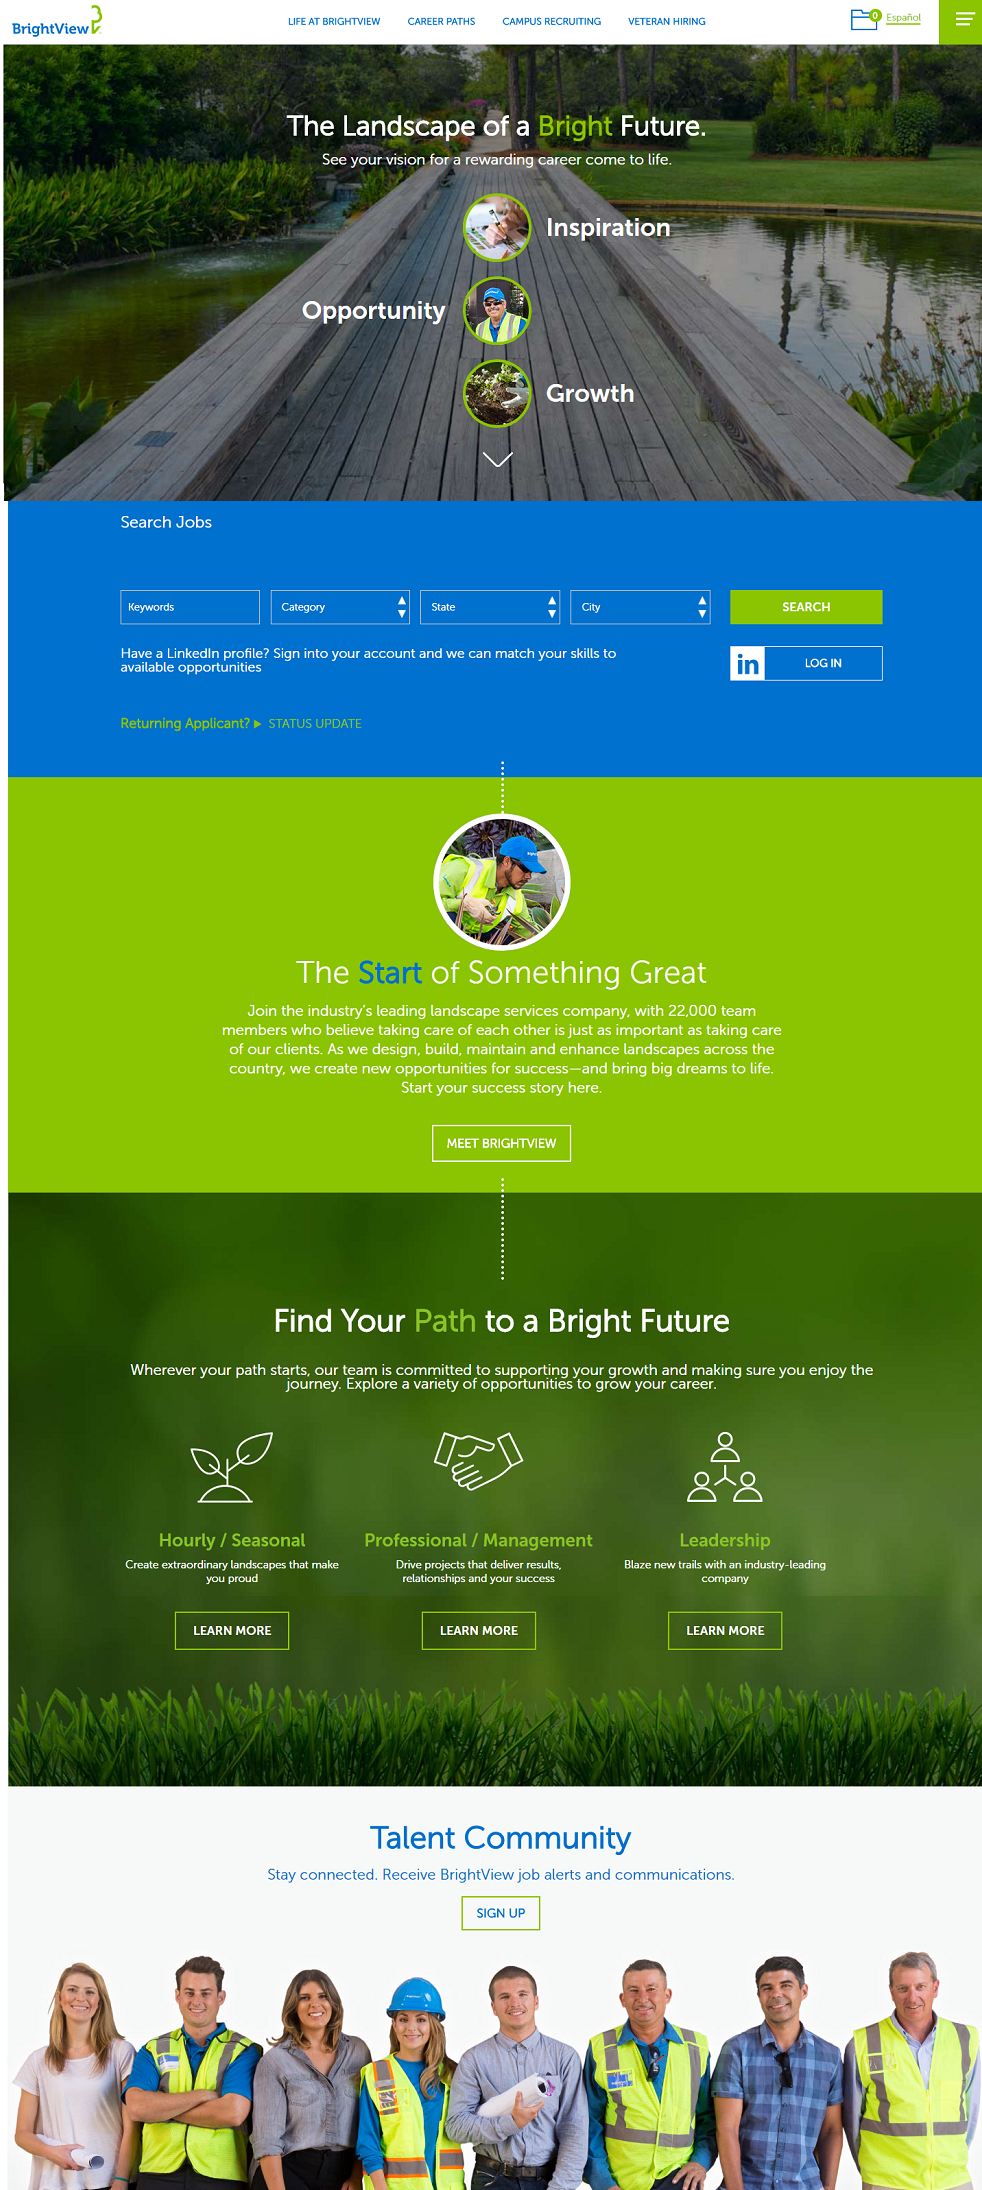 Top Company Career Site 3- Brightview